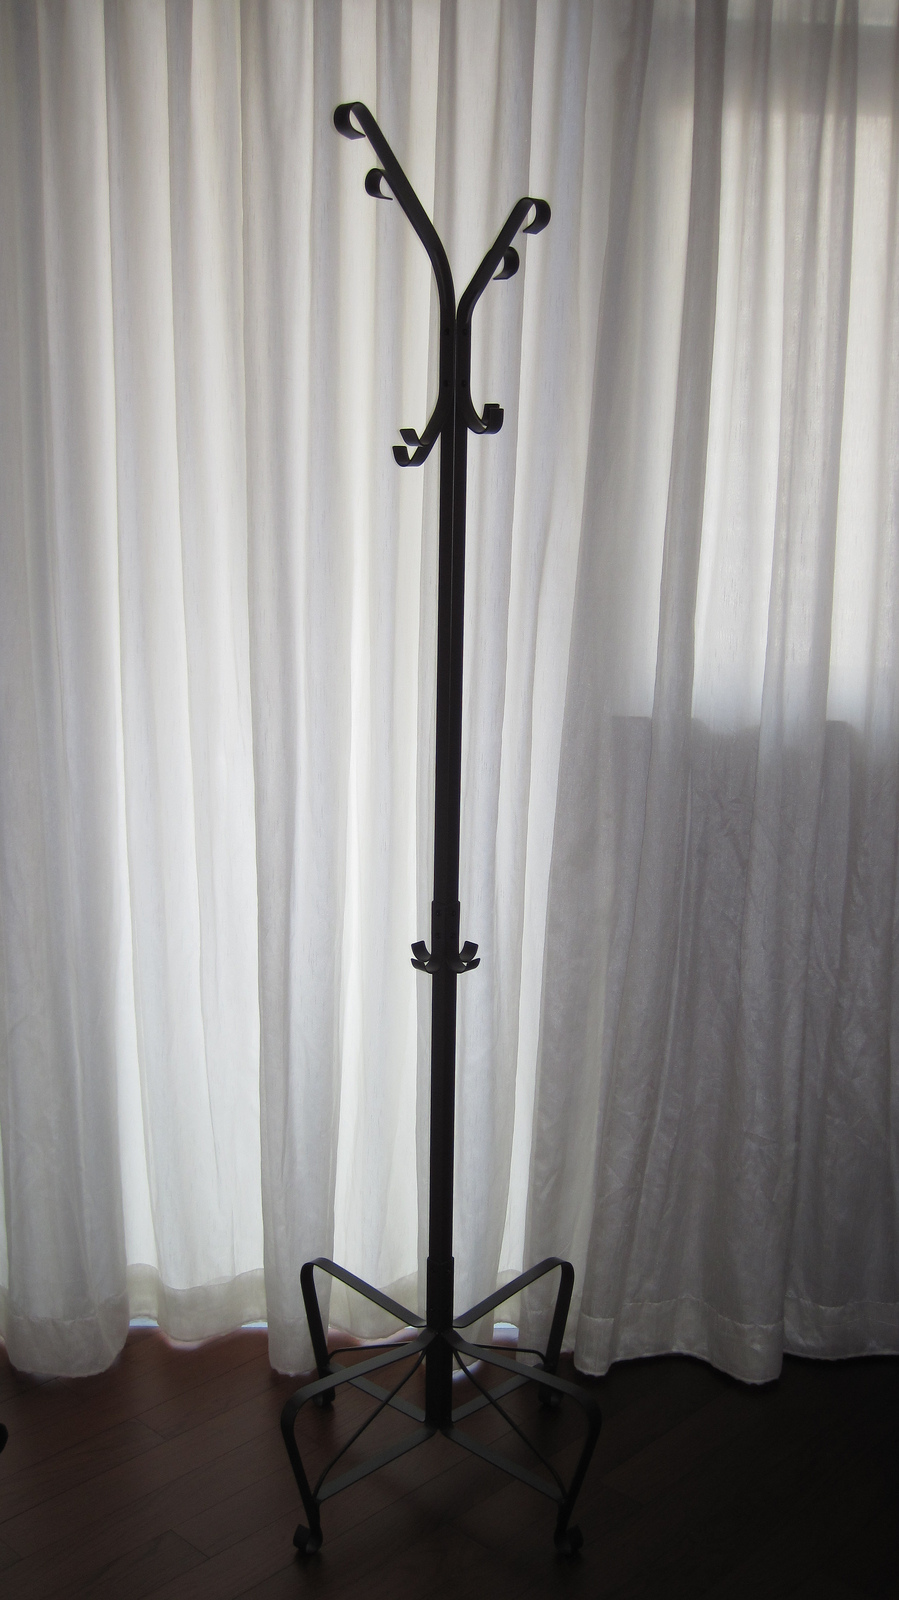 furniture-elegant-cloth-hanger-furniture-for-living-room-areas-with-black-iron-ikea-coat-stands-impressive-furniture-for-bedroom-with-ikea-coat-stands